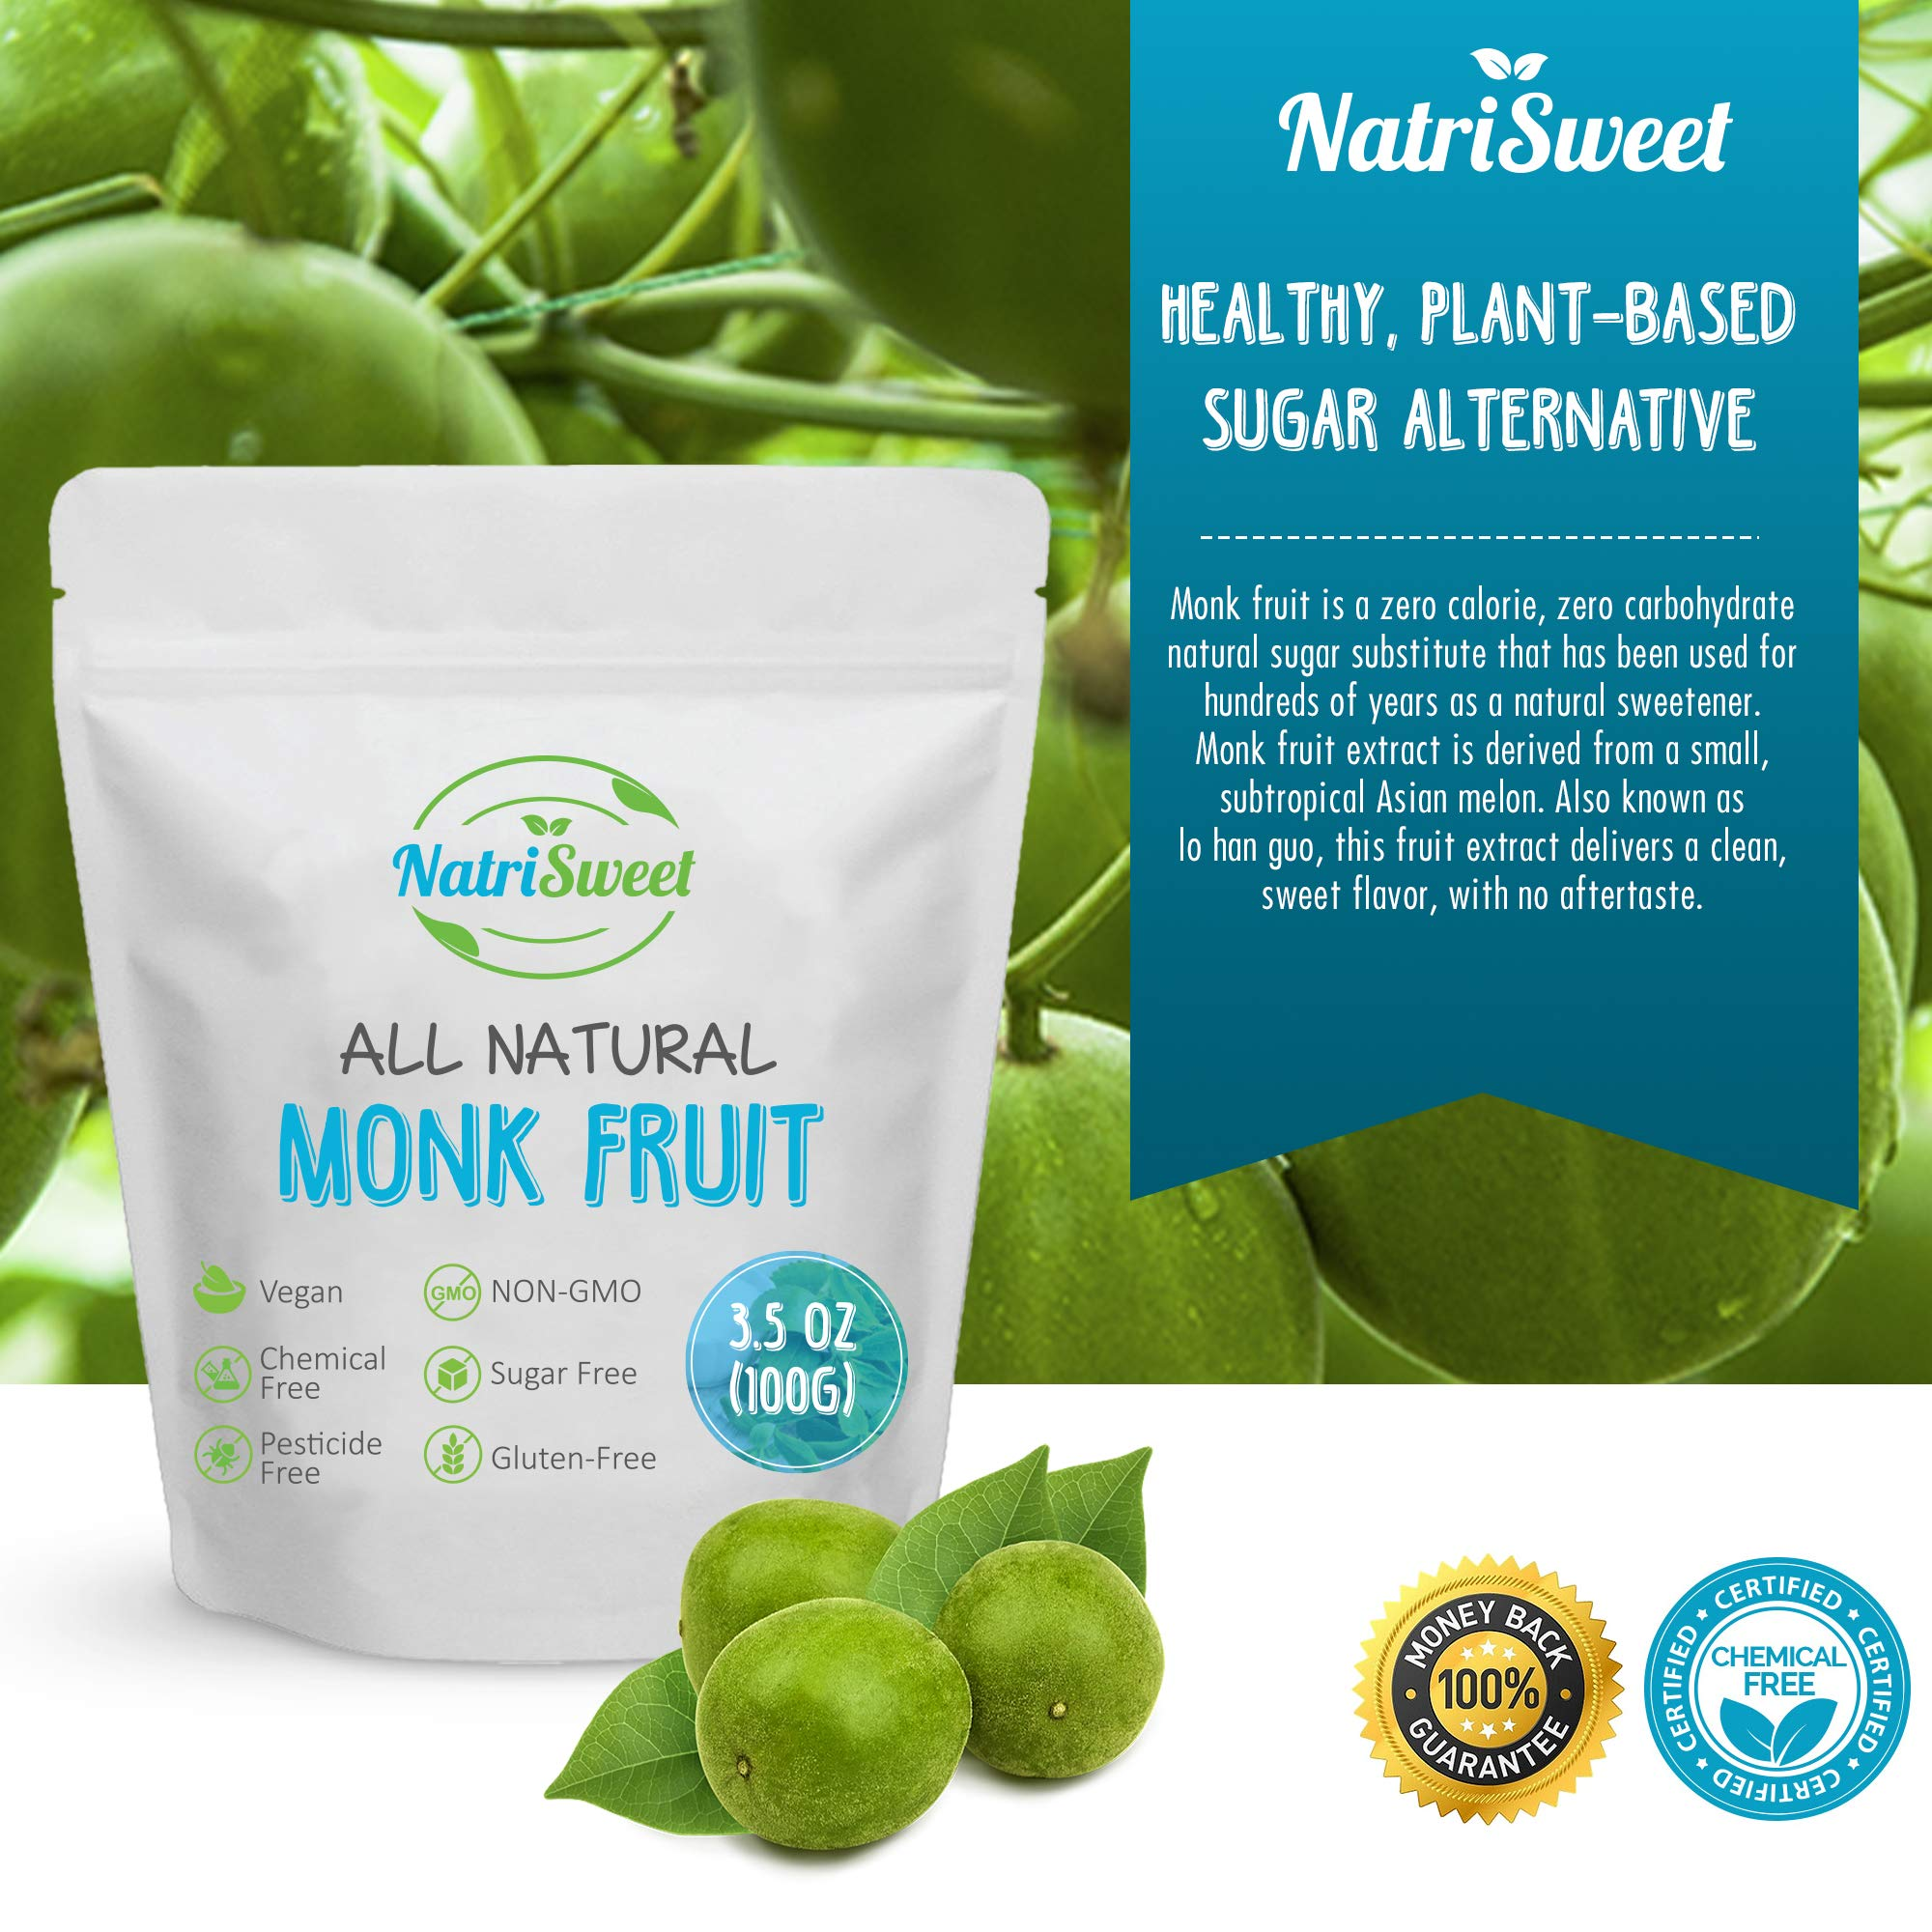 NatriSweet Monk Fruit Extract 3.5oz (100g) 322 Servings | Zero Calorie, Zero Carb, Natural Sweetener | Sugar Alternative with No Artificial Sweeteners | Perfect for Keto, Paleo & Low-Carb Dieters by NatriSweet (Image #5)